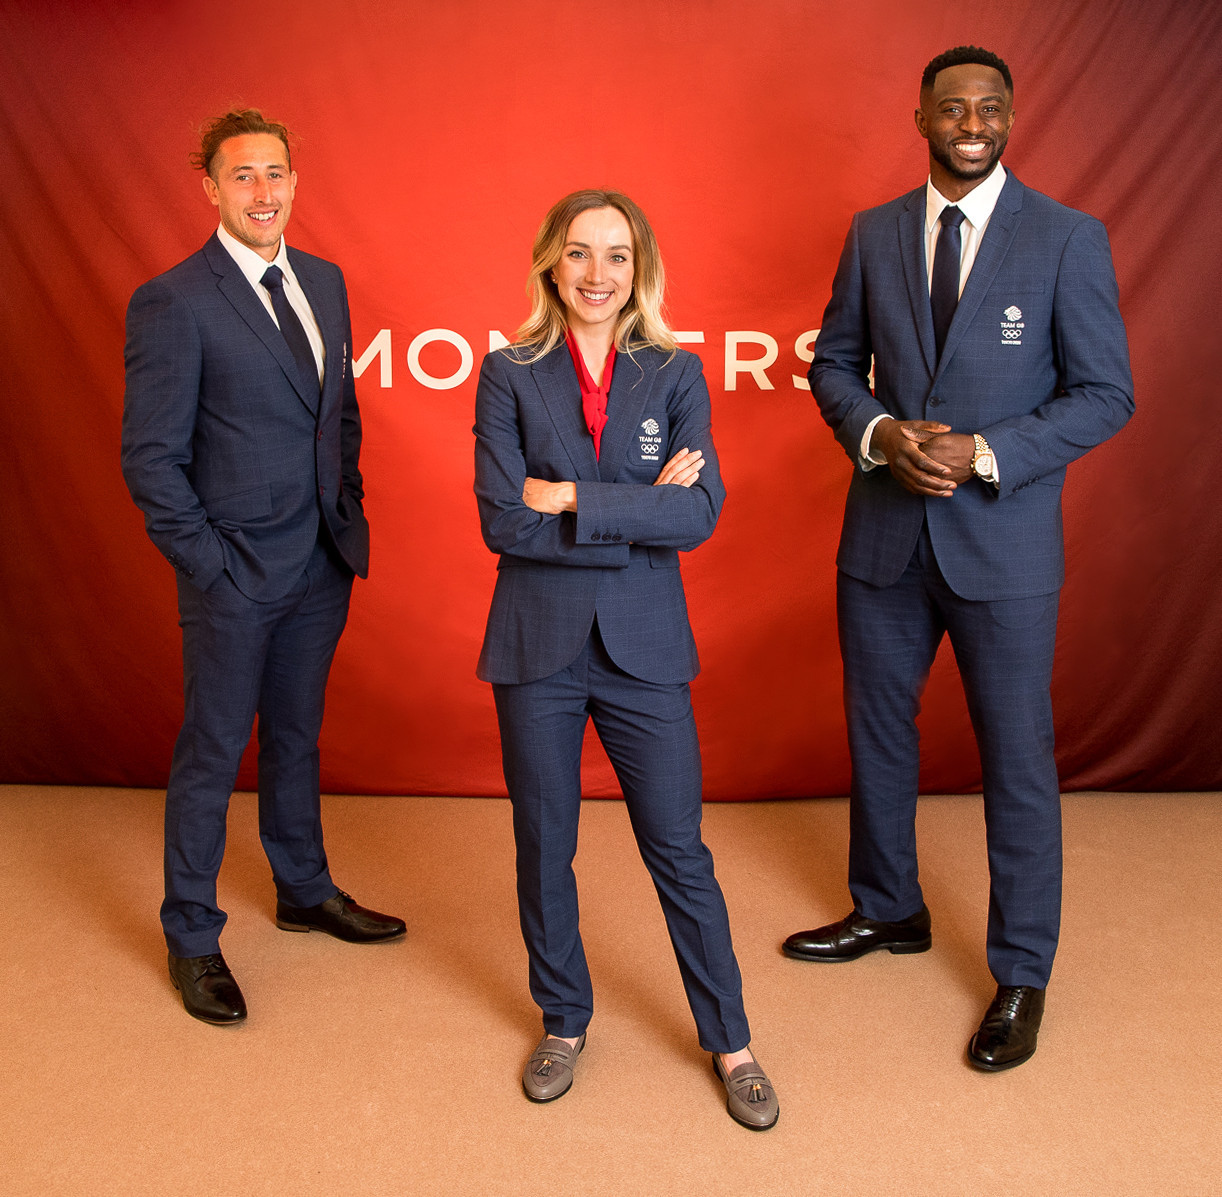 Dan Bibby, Elinor Barker and Mahama Cho at the launch event of Team GB's formal wear for Tokyo 2020 ©Simon Jersey